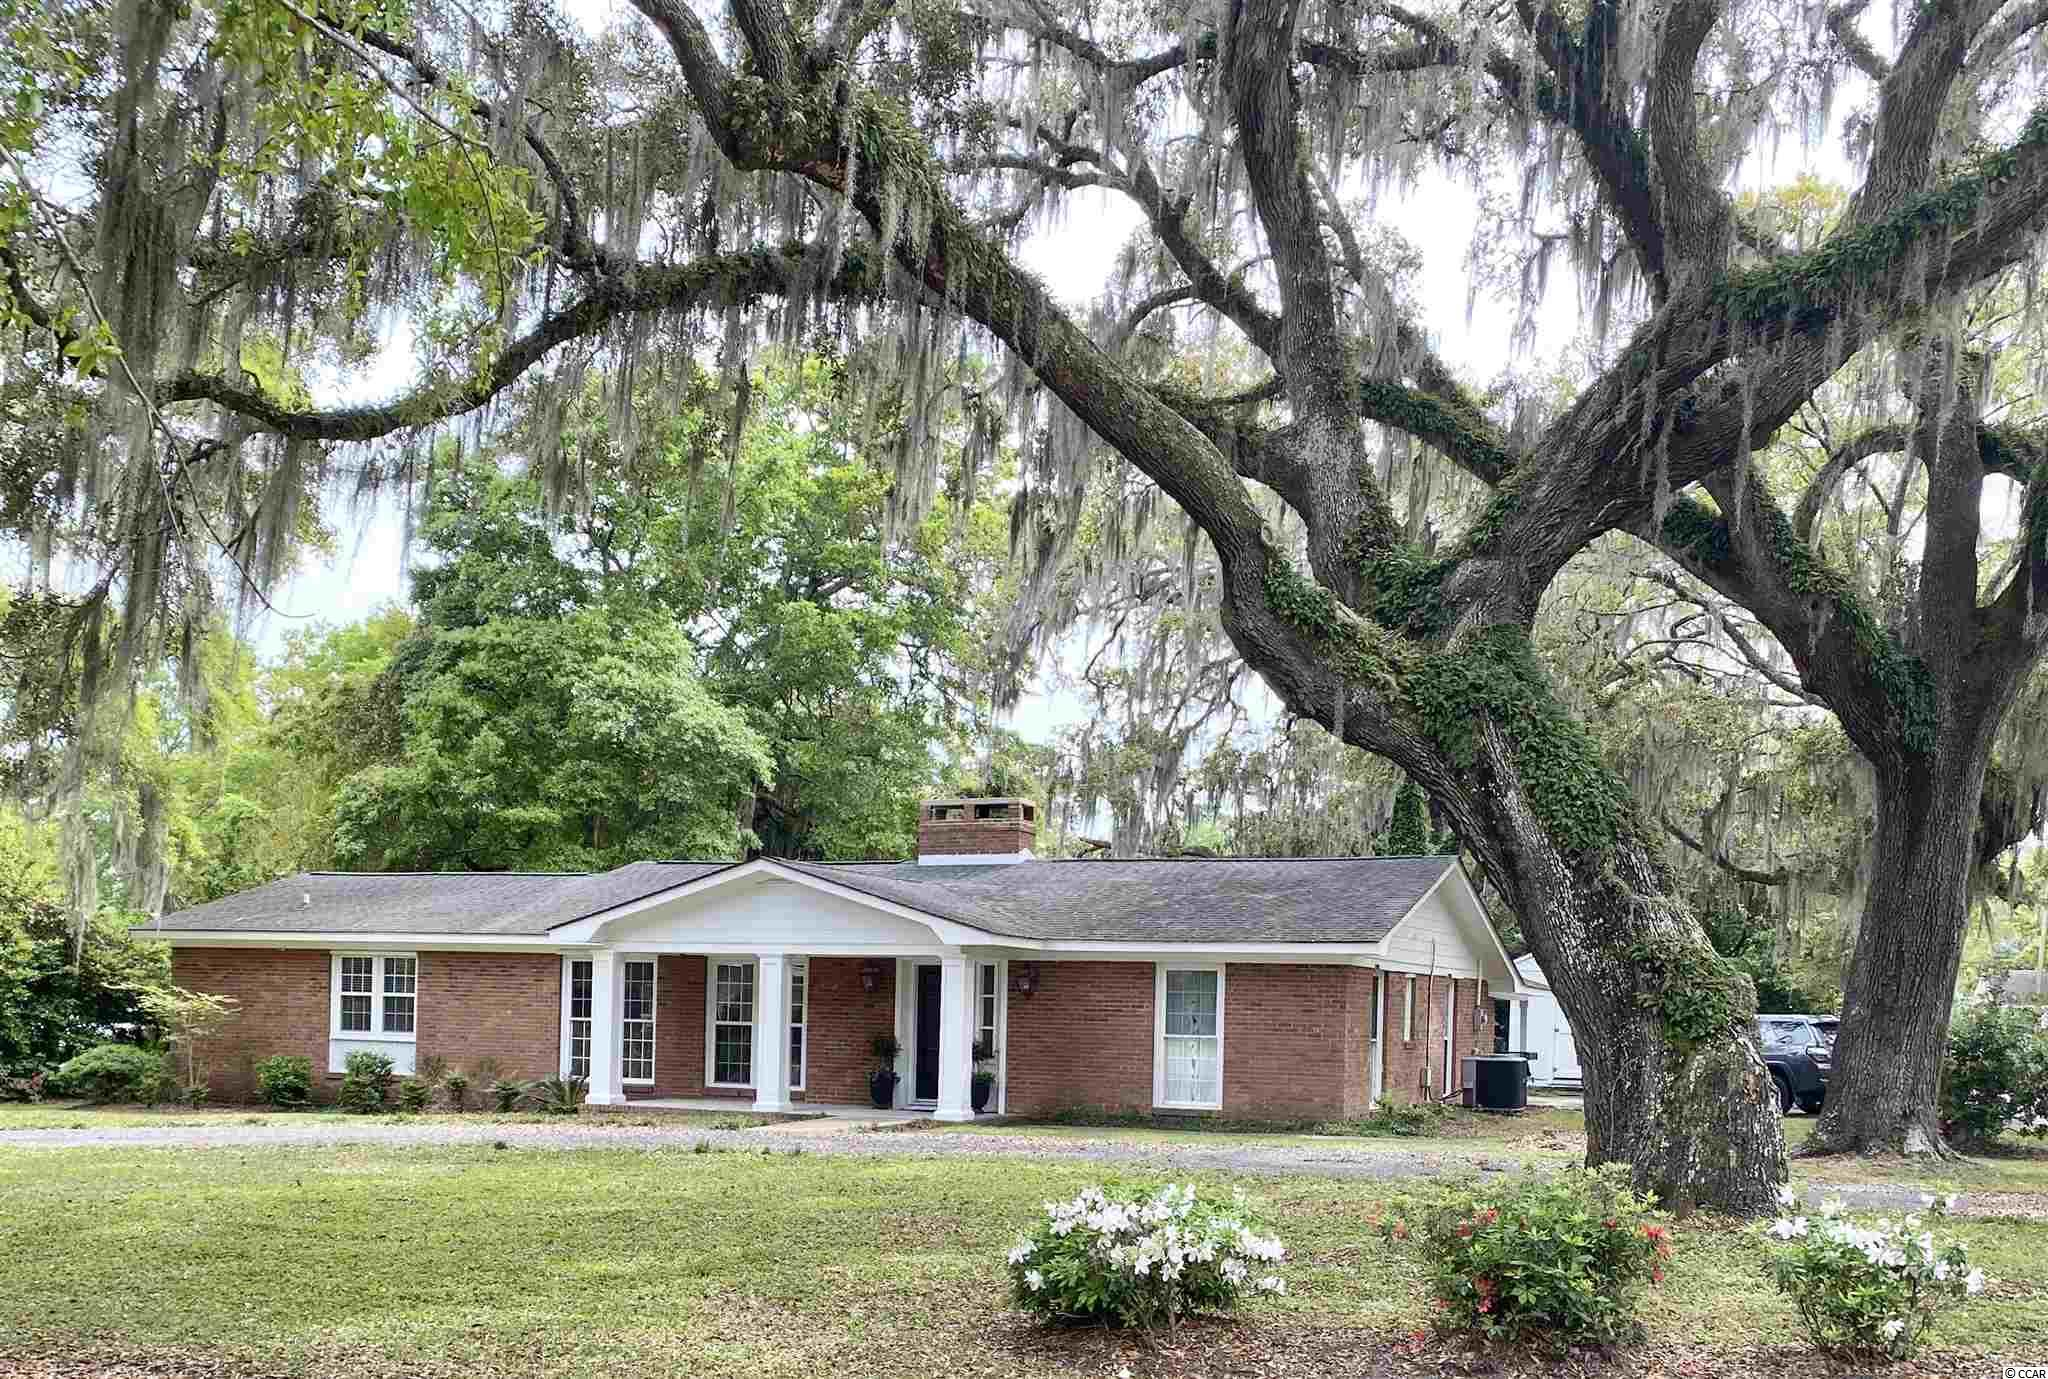 Charming Ranch home on .32 acre corner lot located in the heart of Murrells Inlet East of Highway 17. No HOA!!! Floor plan features large master suite (complete with walk in his & hers closets, master bath with double vanity, linen closet, jacuzzi tub, walk in shower,  & separate water closet), 2 guest bedrooms, additional full bath, living area with large wood burning fireplace and custom mantle, upgraded kitchen and breakfast bar, dining area and entryway den. Many improvements made by current owner include new roof, new LVP flooring, all new windows, rear patio addition, ductwork and HVAC, and kitchen remodel including solid wood cabinets, new appliances (cooktop, double wall ovens and microwave, dishwasher, and custom commercial style hood vent). Lot boasts several large live oaks, rear patio area, large detached 12x12 storage shed, carport, and enough parking for your boats, cars, and RV. Just a short stroll to local restaurants and the Murrells Inlet Marsh Walk.